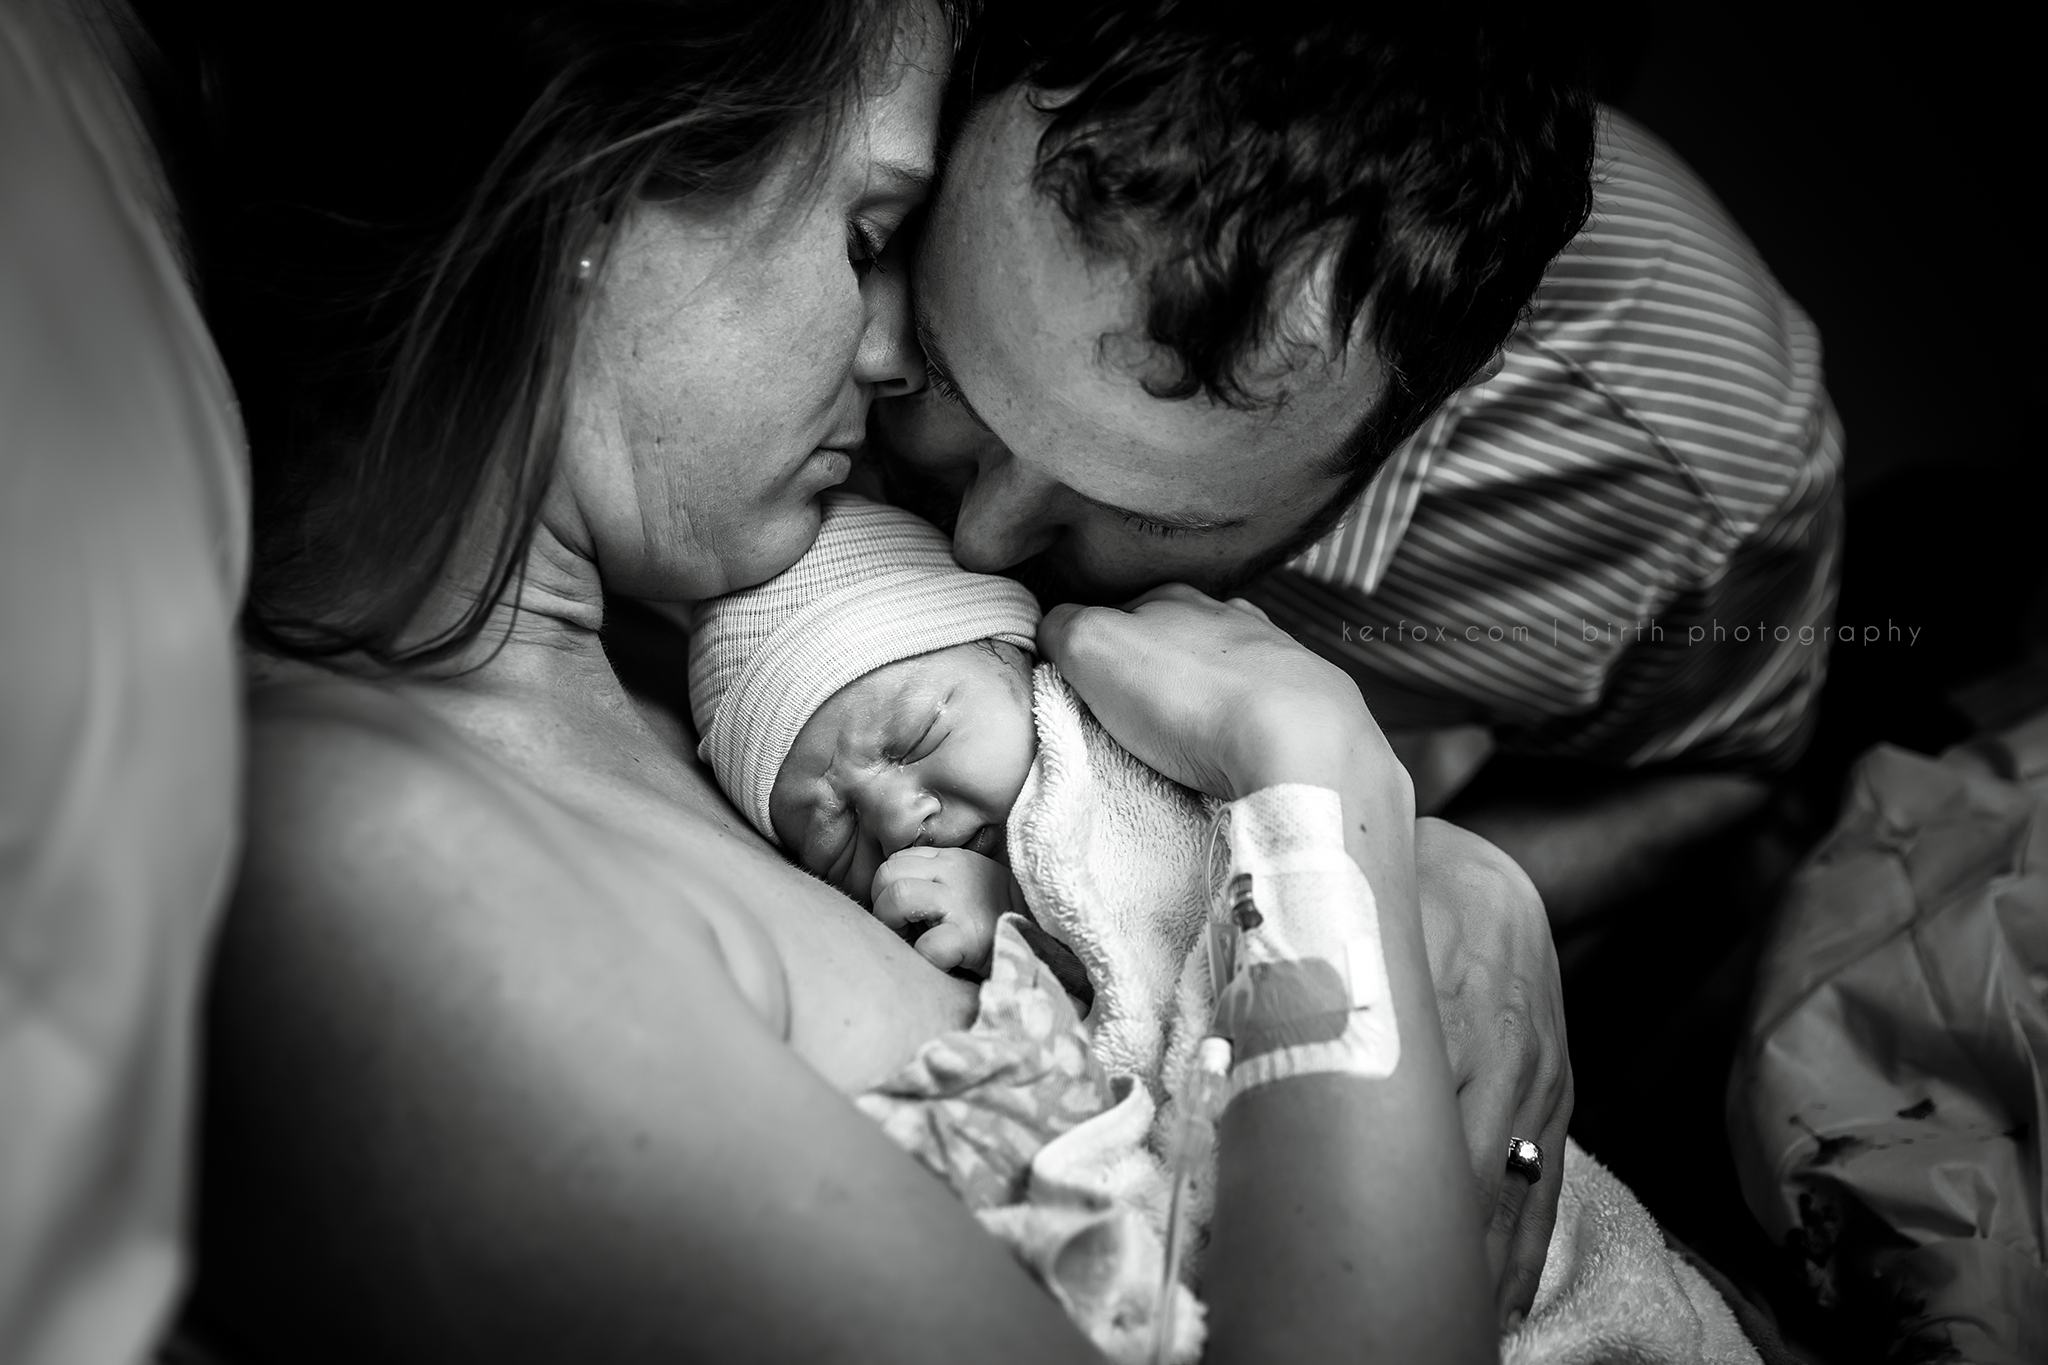 columbus, ga birth photography, ker-fox photography, baby on mom's chest, dad kissing baby